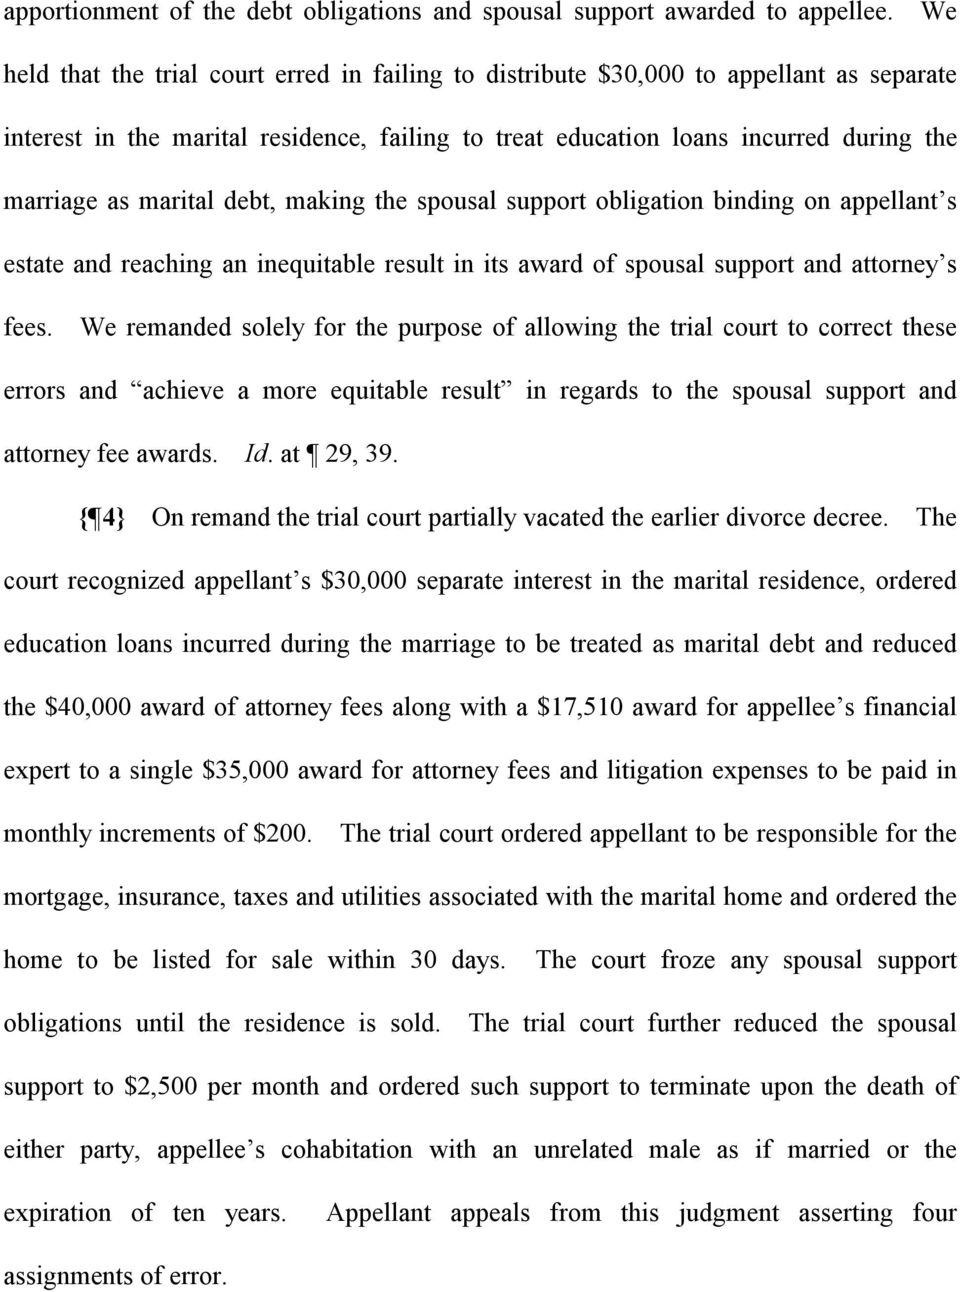 marital debt, making the spousal support obligation binding on appellant s estate and reaching an inequitable result in its award of spousal support and attorney s fees.